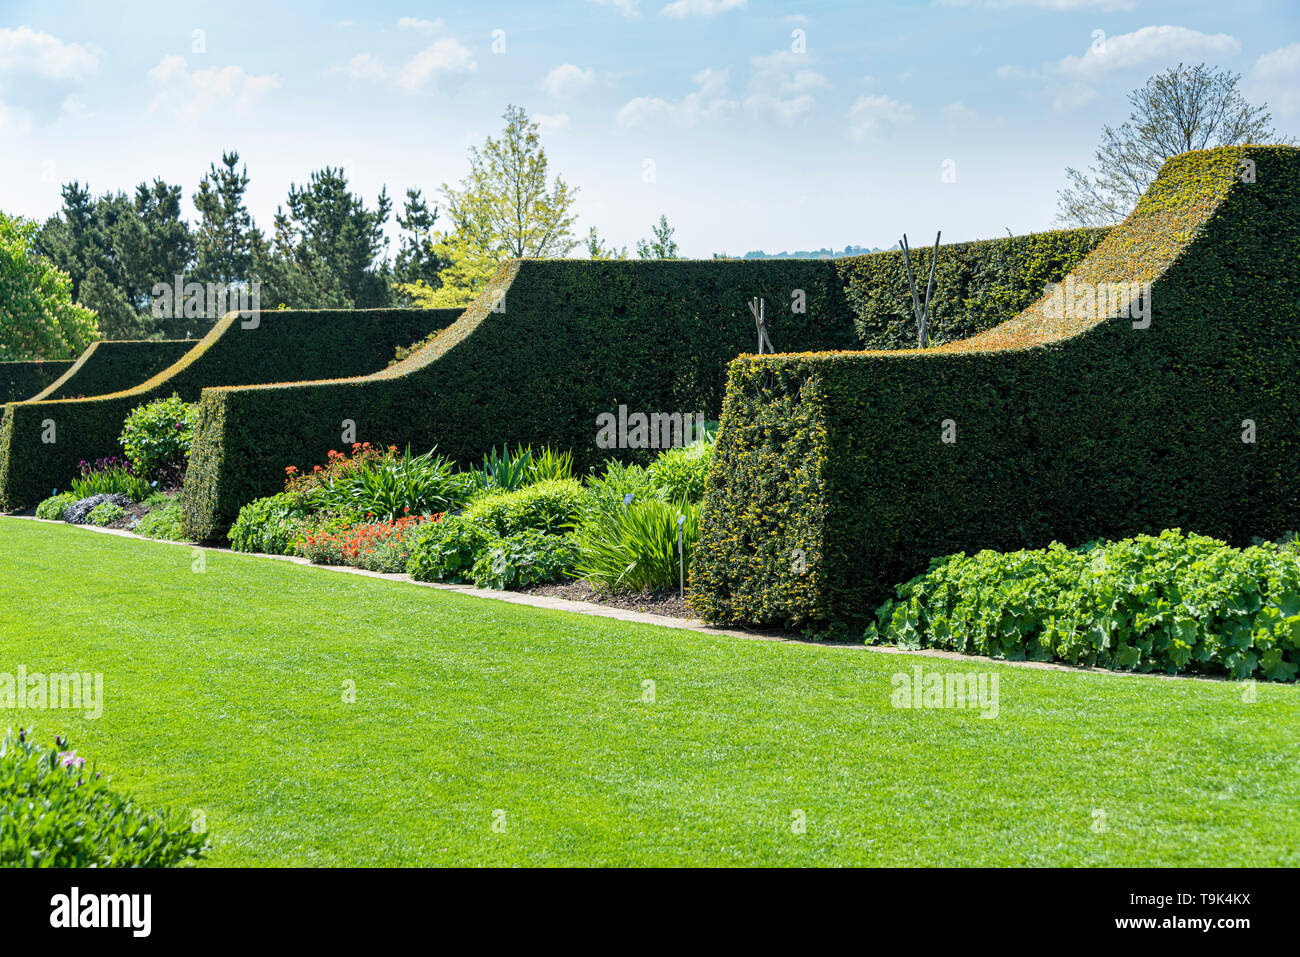 The herbaceous border at RHS Hyde Hall, with tightly trimmed hedging. - Stock Image